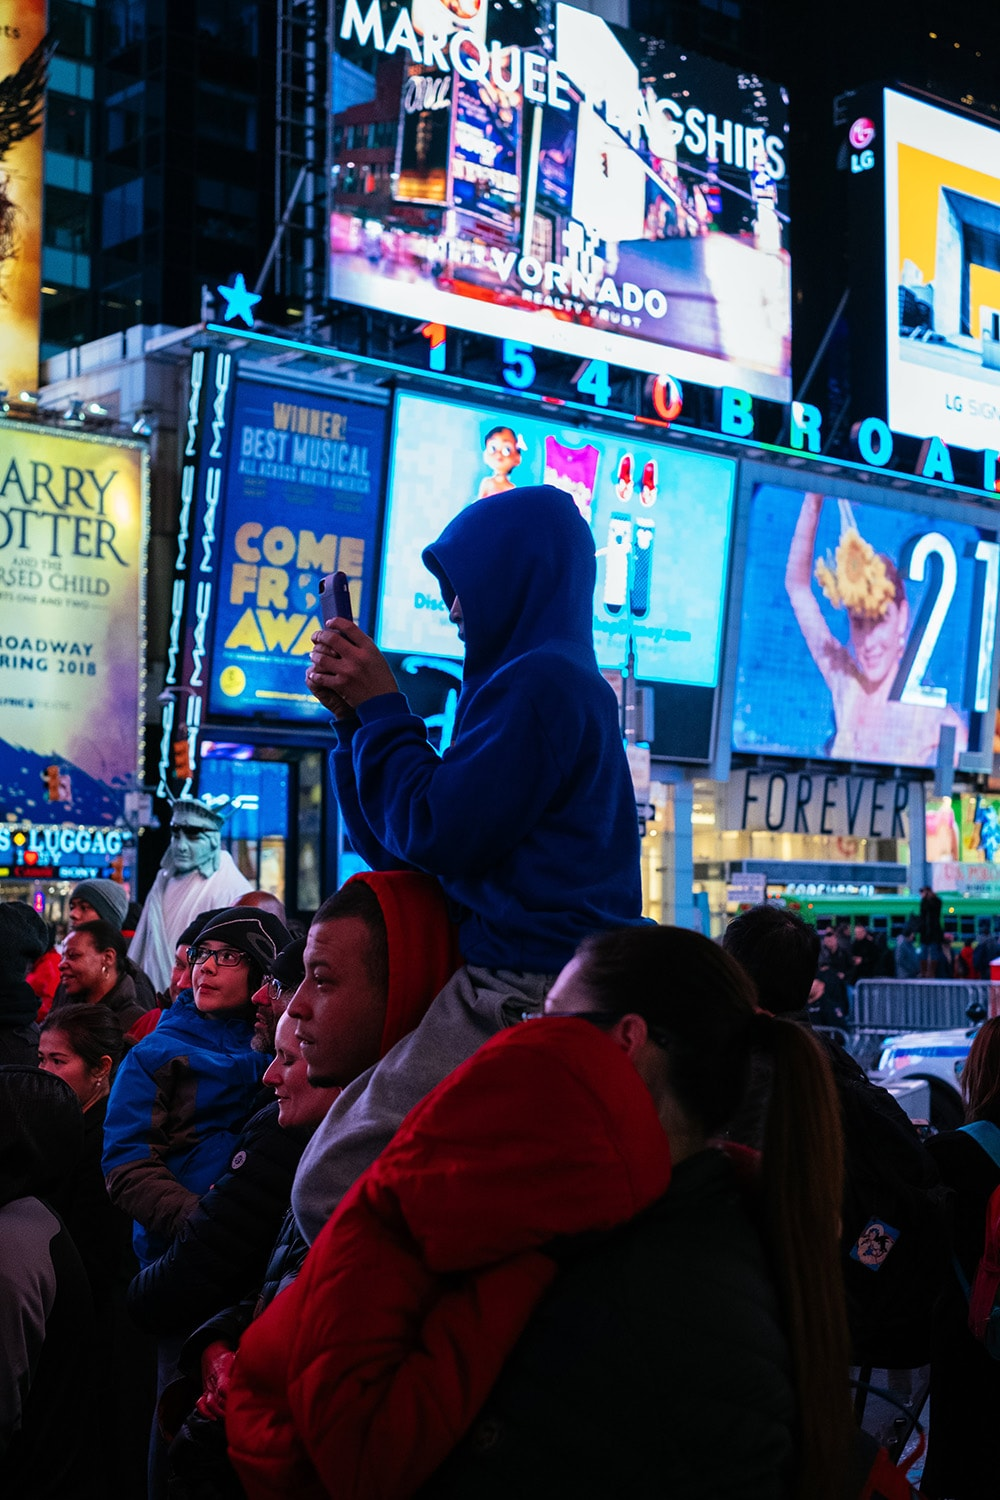 father and son in Times Square at night